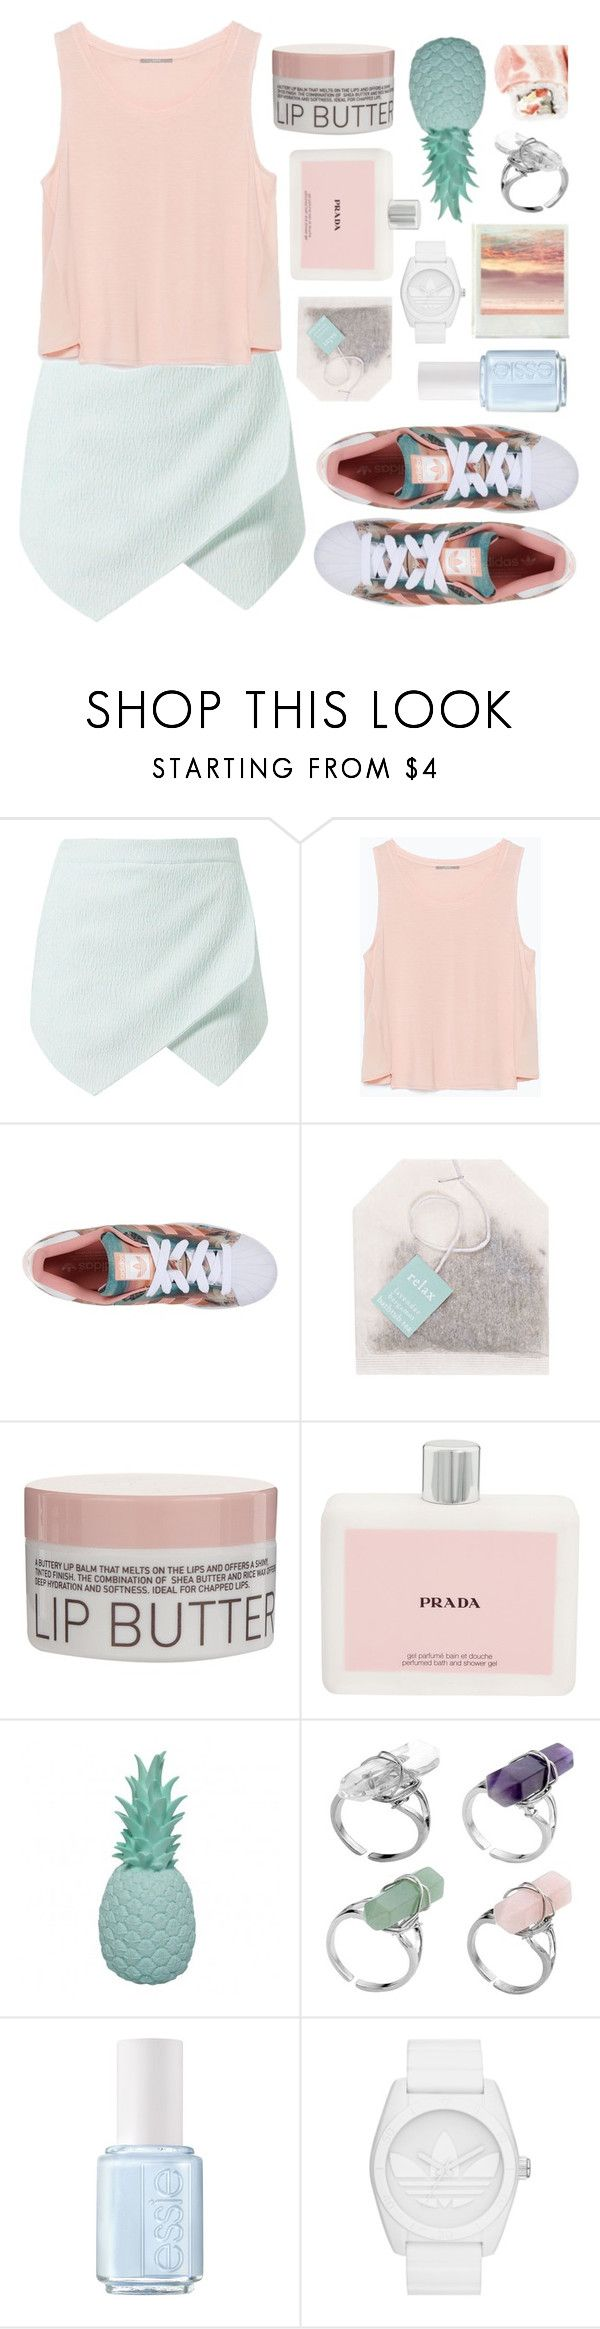 """""""''I gave you attention when nobody else was payin'..''"""" by felytery ❤ liked on Polyvore featuring Zara, adidas Originals, Korres, Prada, Ananas, Essie and Polaroid"""